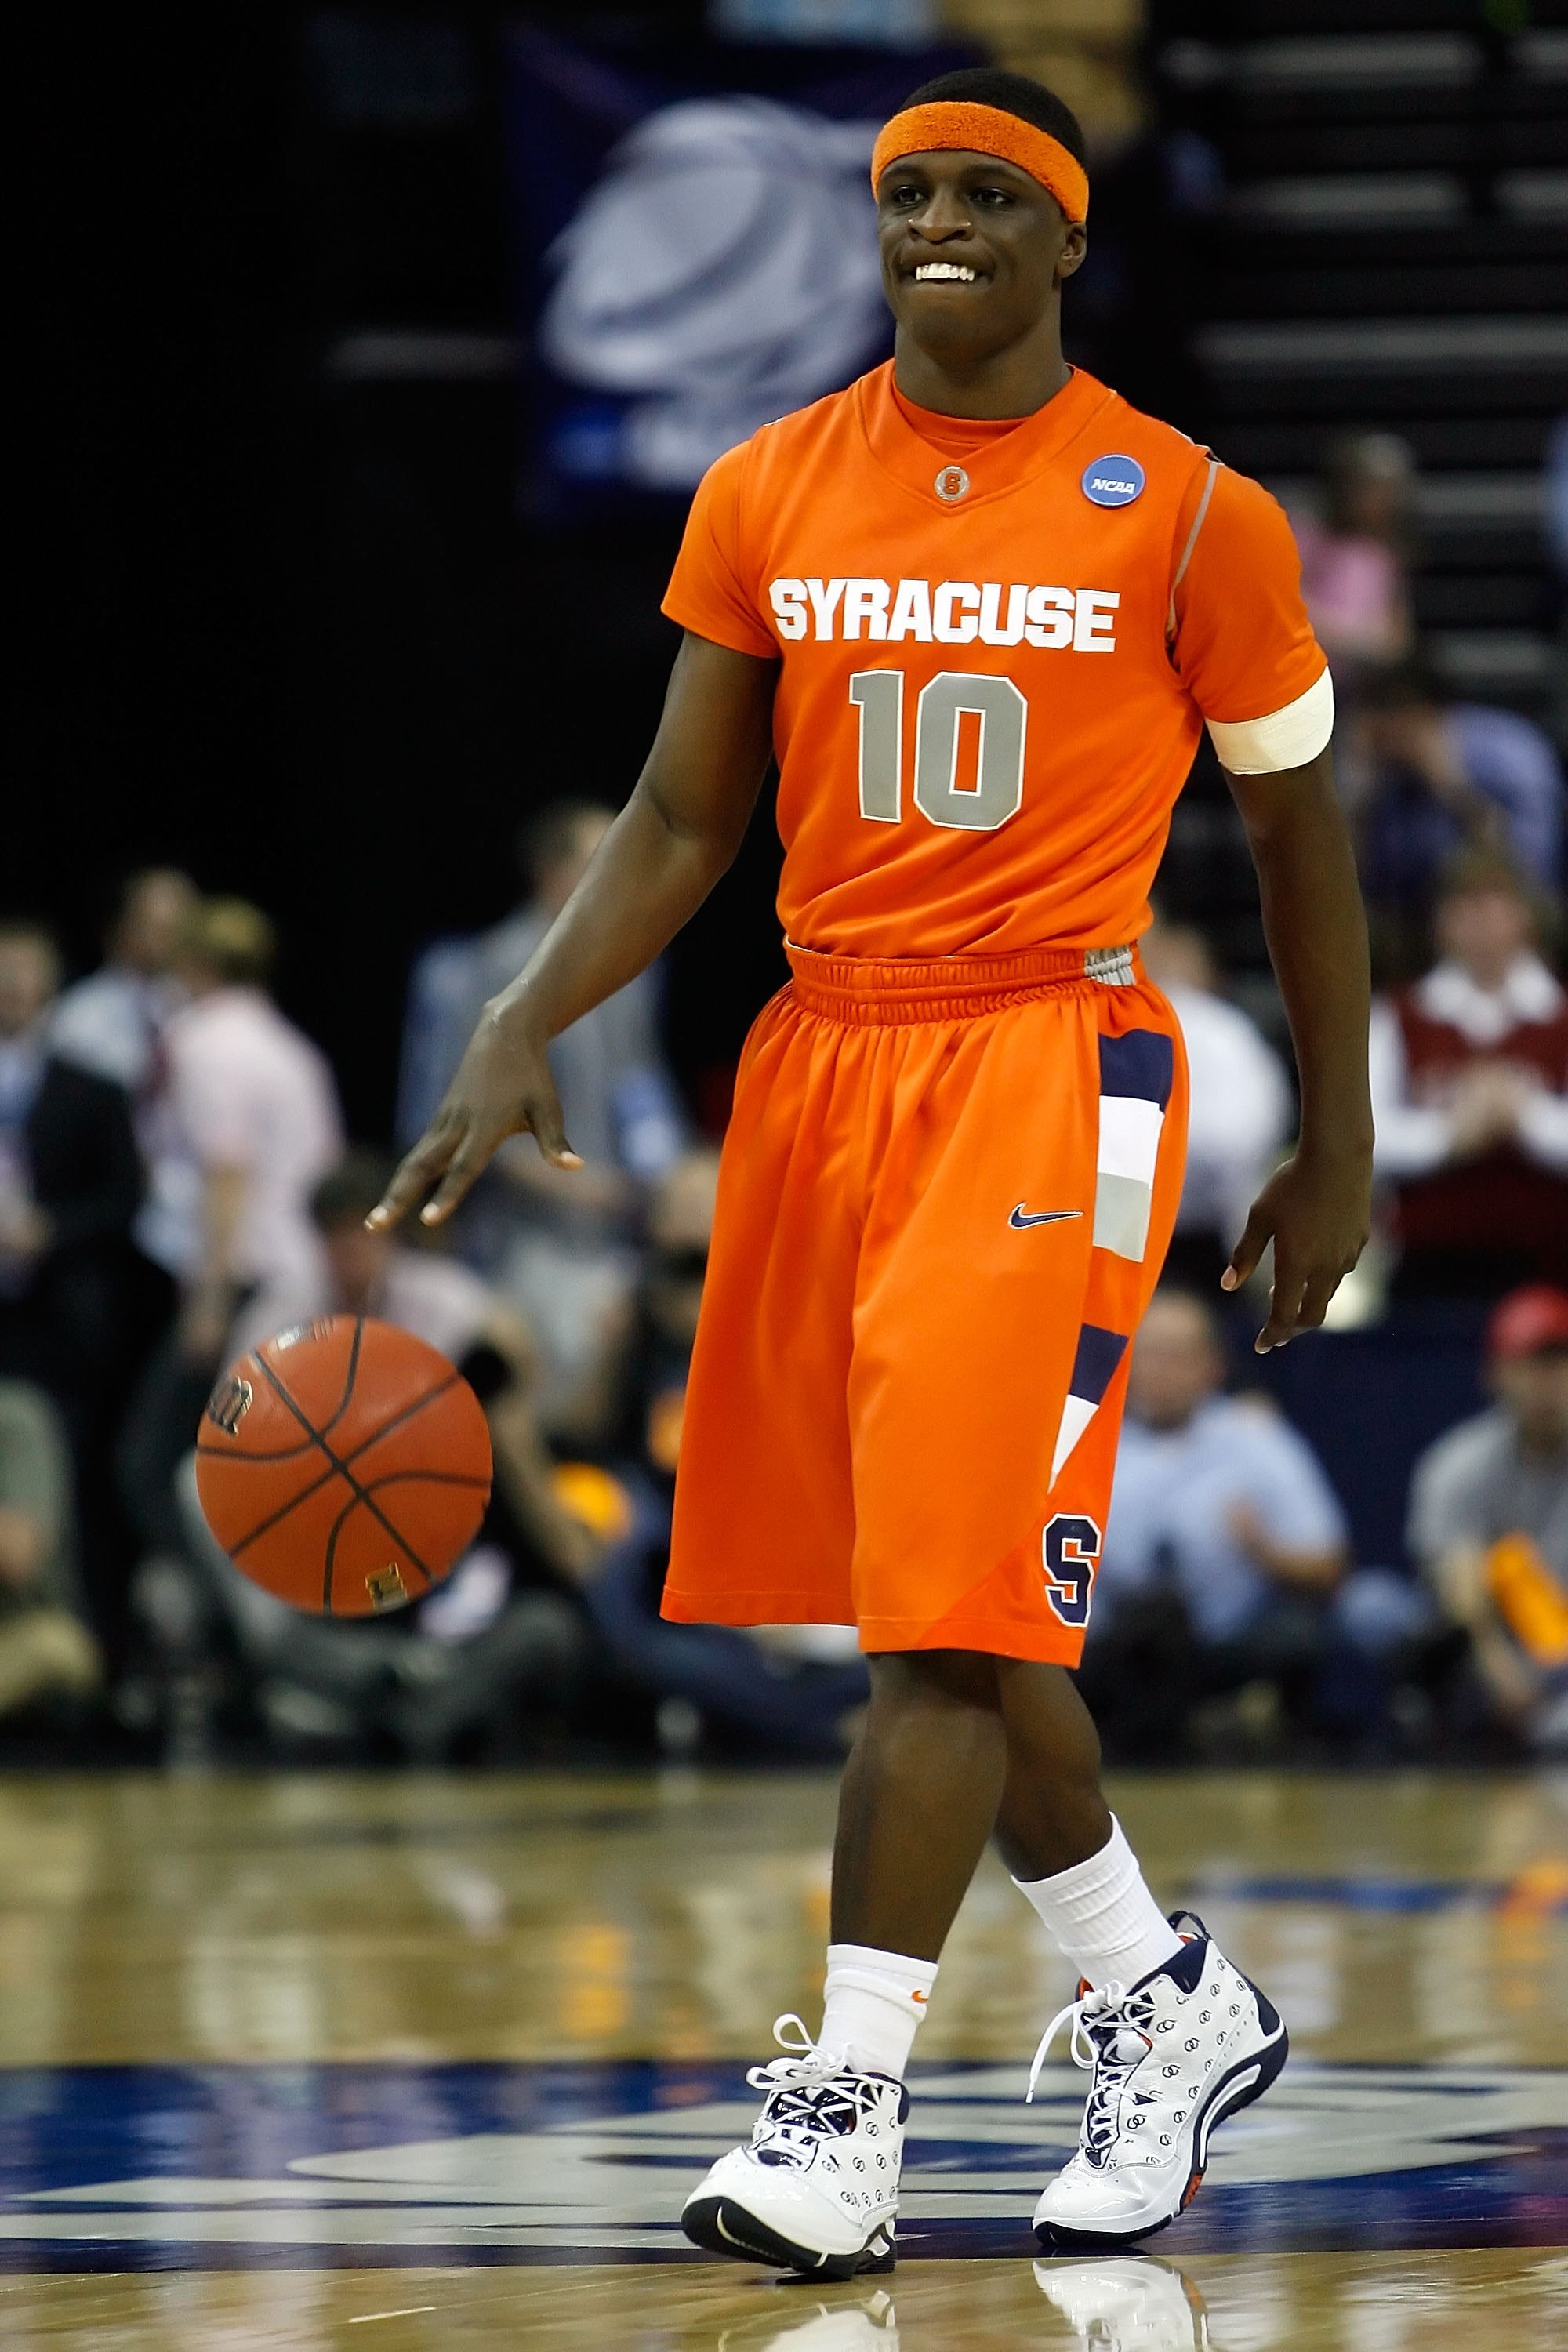 MEMPHIS, TN - MARCH 27:  Jonny Flynn #10 of the Syracuse Orange moves the ball against the Oklahoma Sooners during the NCAA Men's Basketball Tournament South Regionals at the FedExForum on March 27, 2009 in Memphis, Tennessee.  (Photo by Joe Murphy/Getty